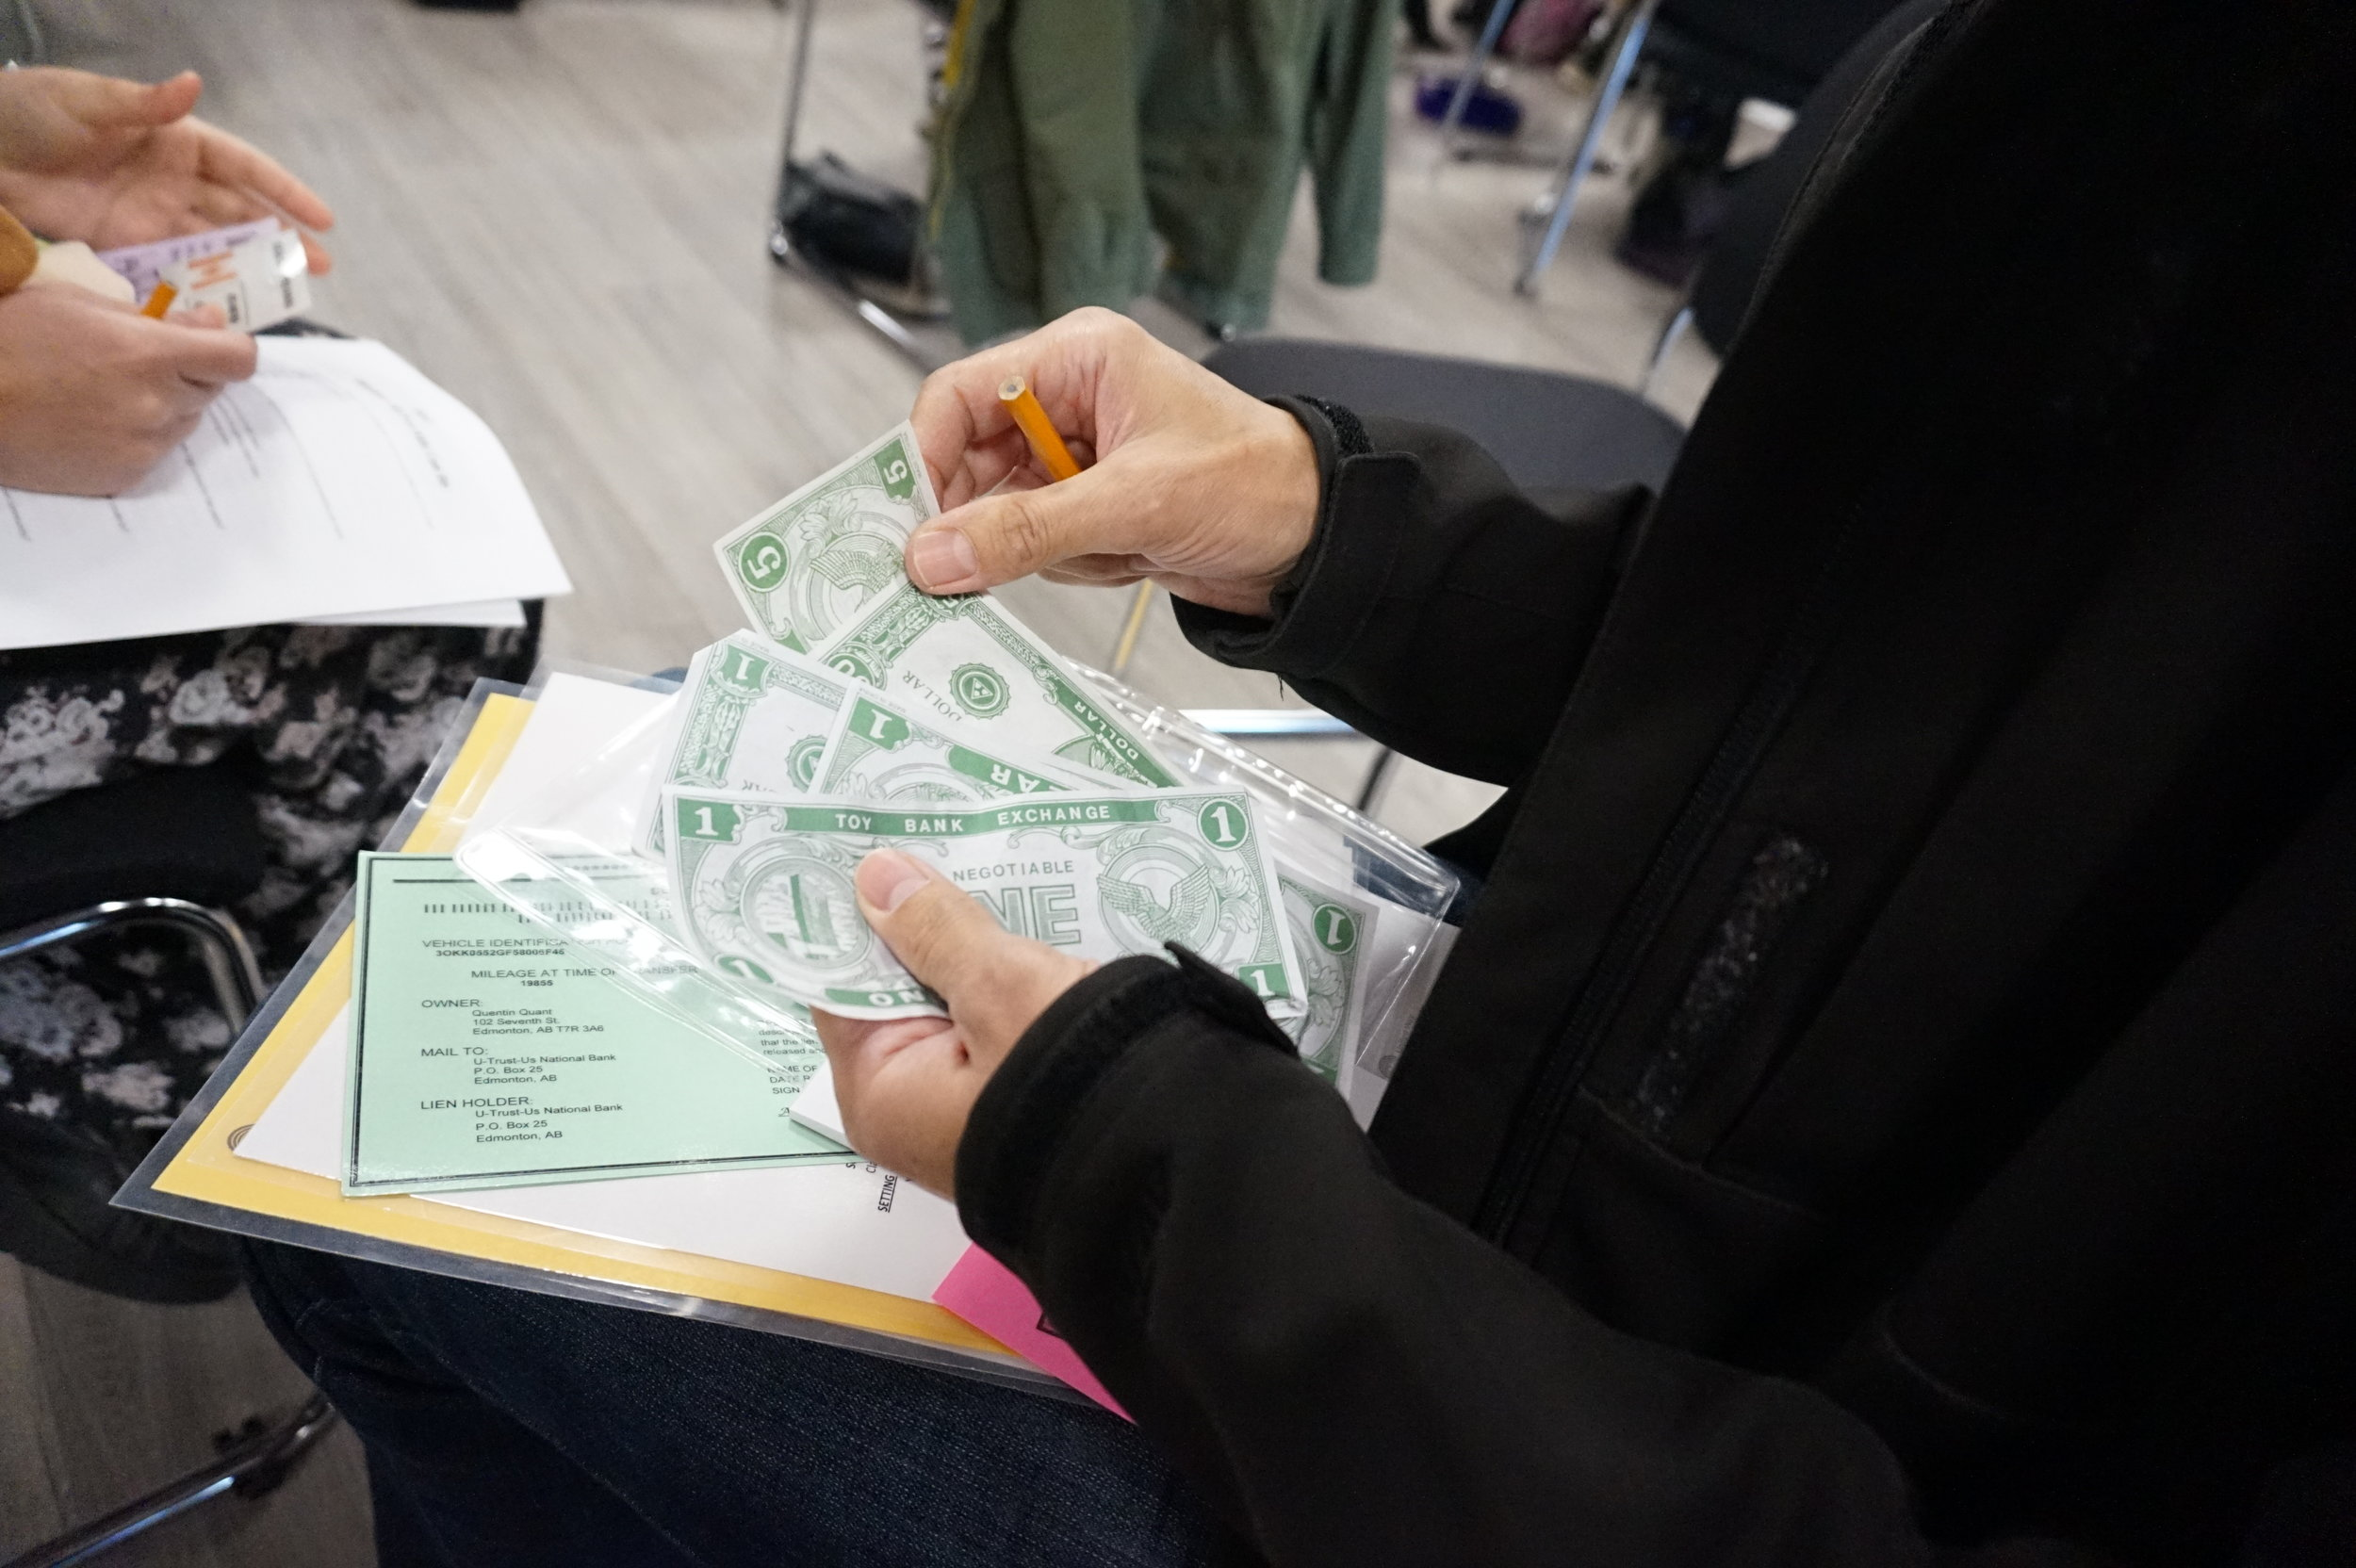 Participant count money available to pay for expenses and bills